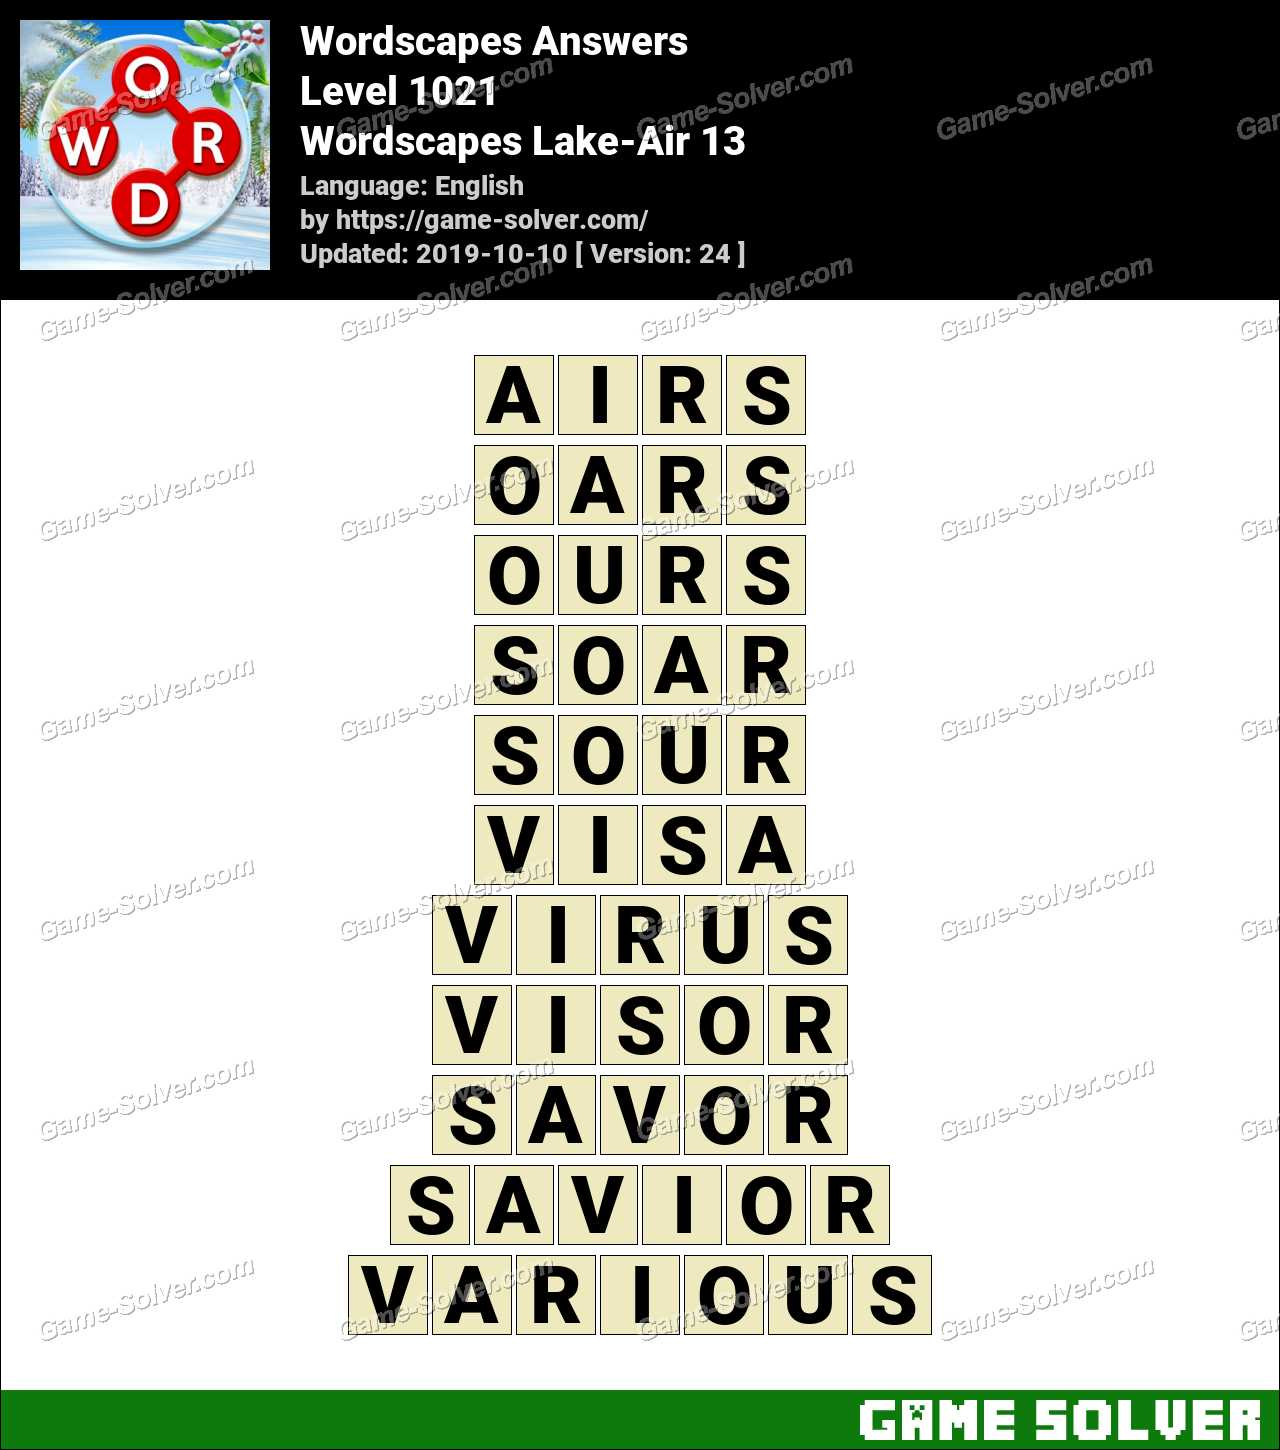 Wordscapes Lake-Air 13 Answers